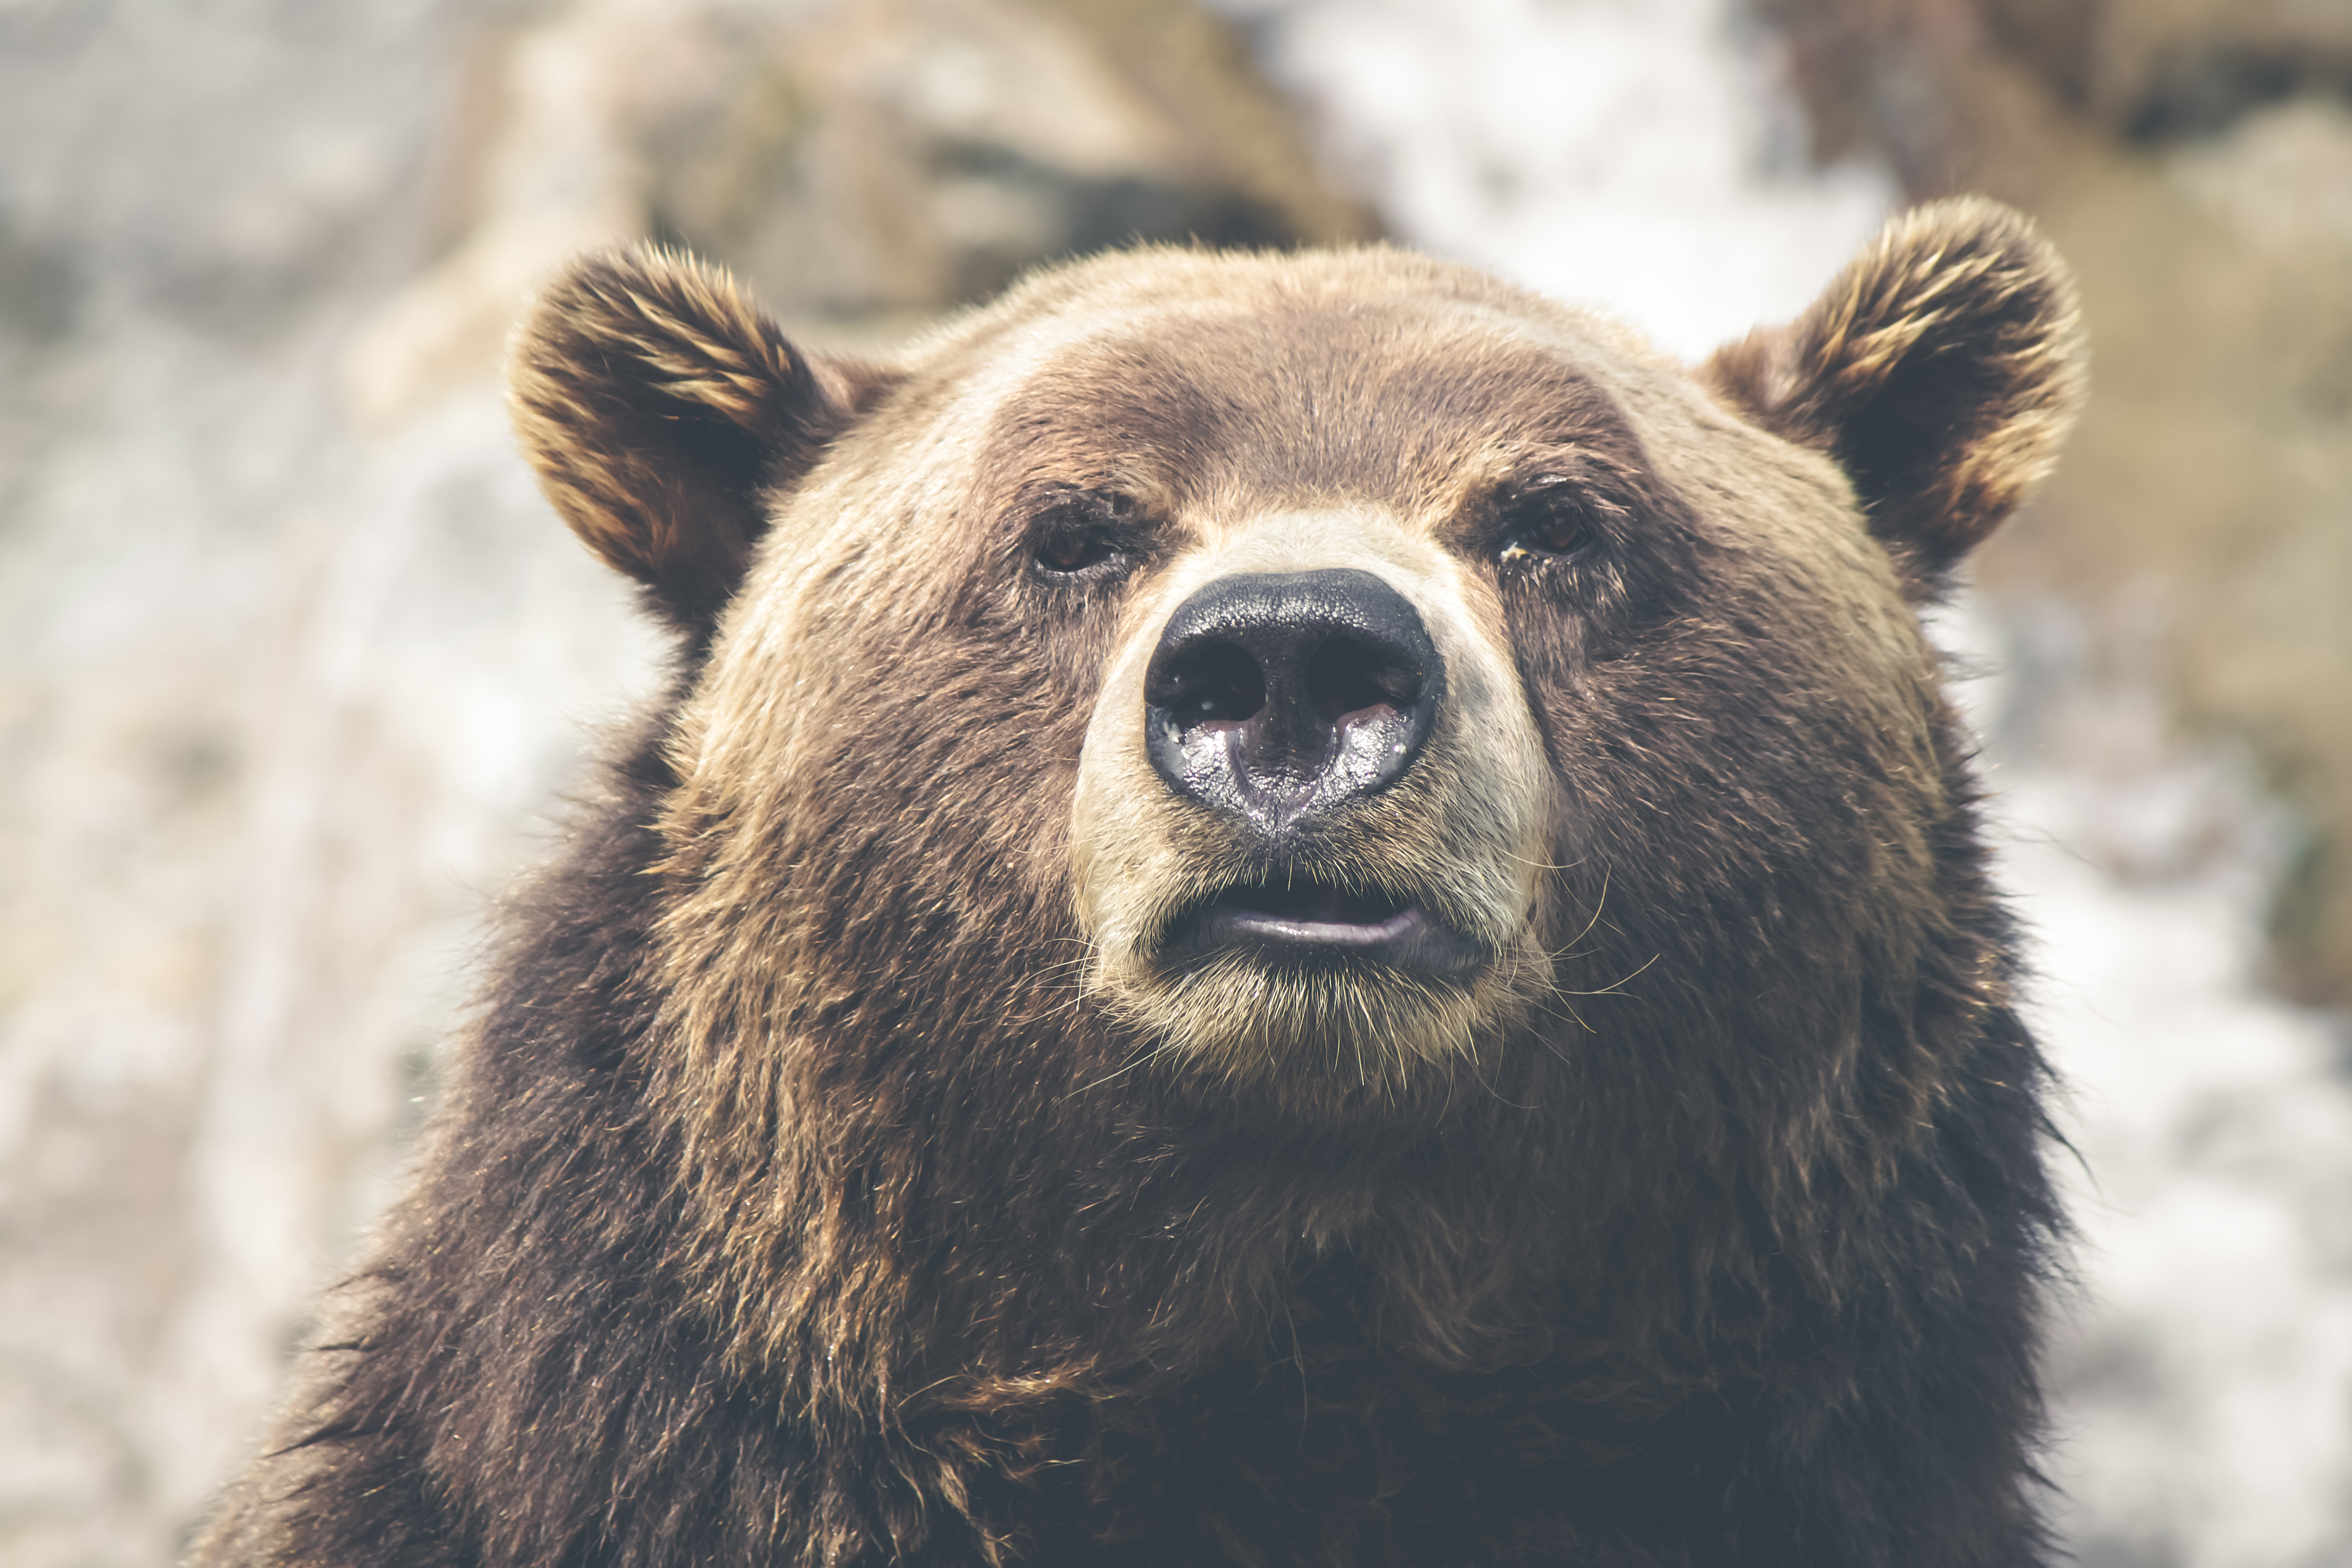 Head of Grizzly Bear, Animal, Bear, Brown, Carnivore, HQ Photo